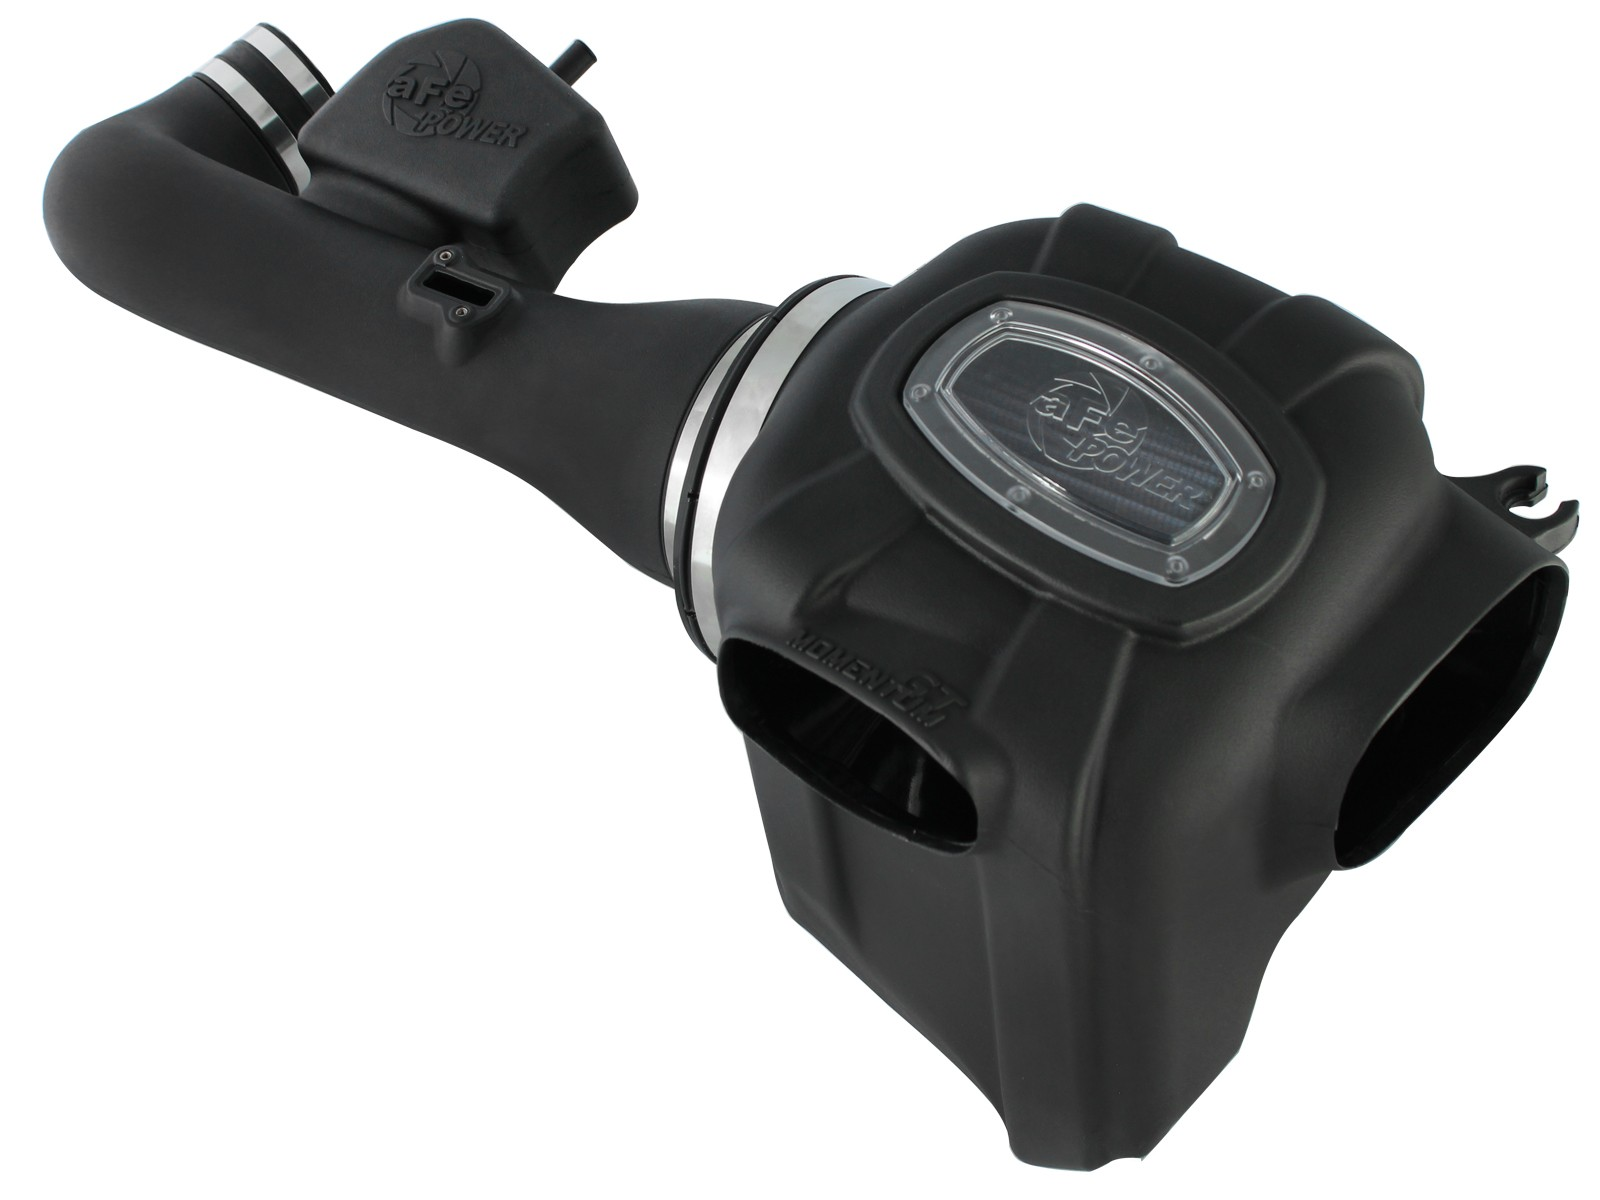 aFe POWER 51-76101 Momentum GT Pro DRY S Cold Air Intake System